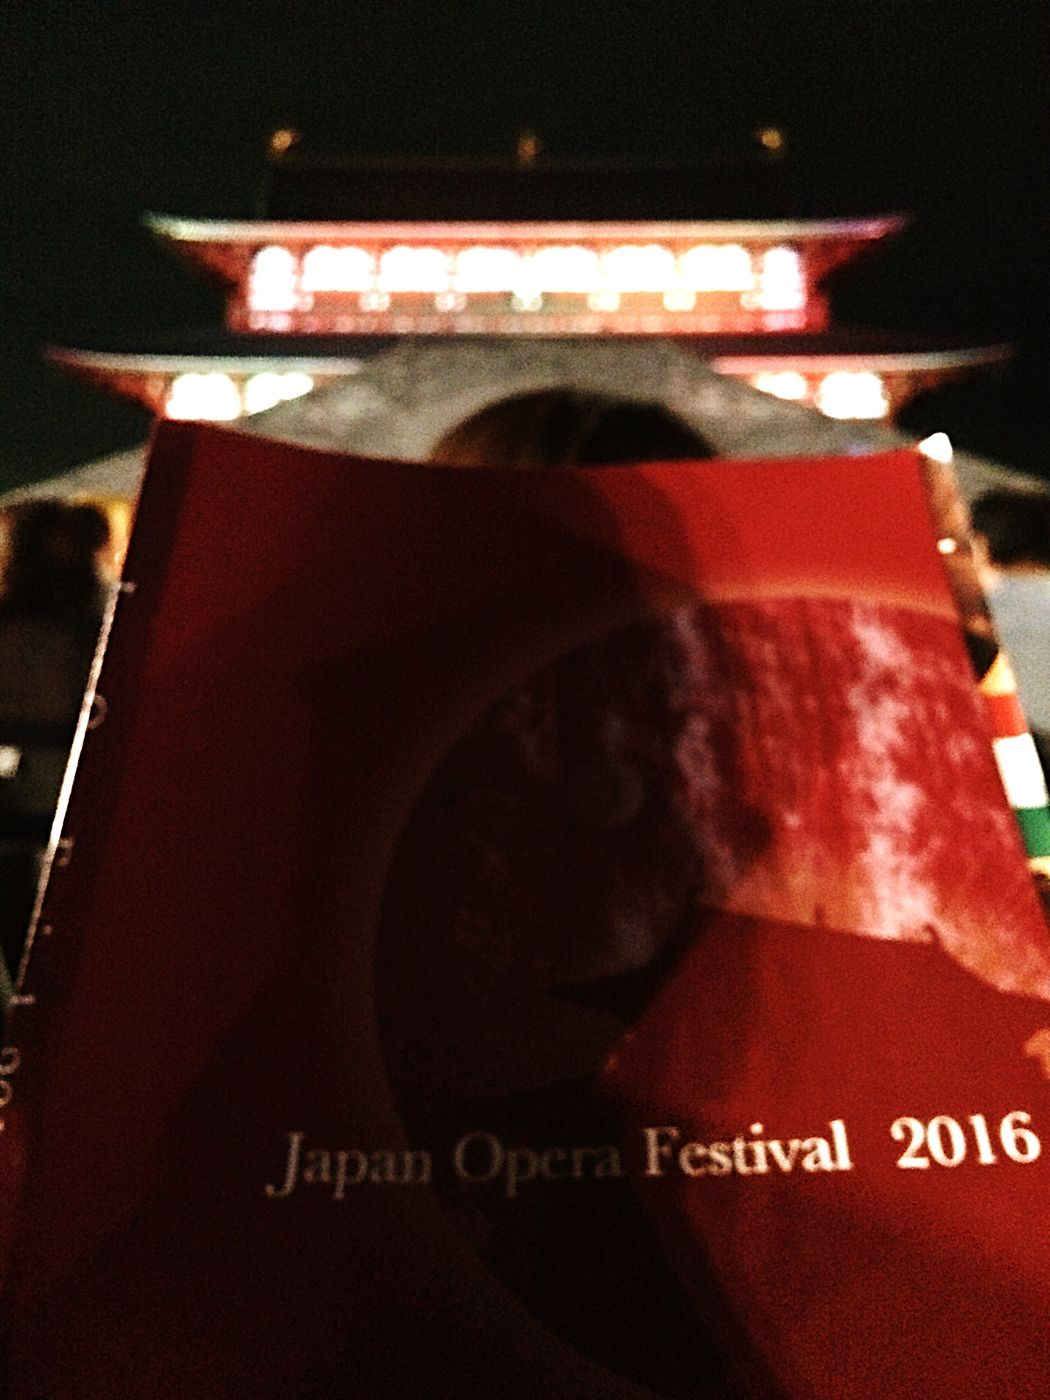 Japanoperafestival IPhoneography Heijyoukyou Close-up Focus On Foreground The Past No People Symbol 平城宮 Nara Opéra